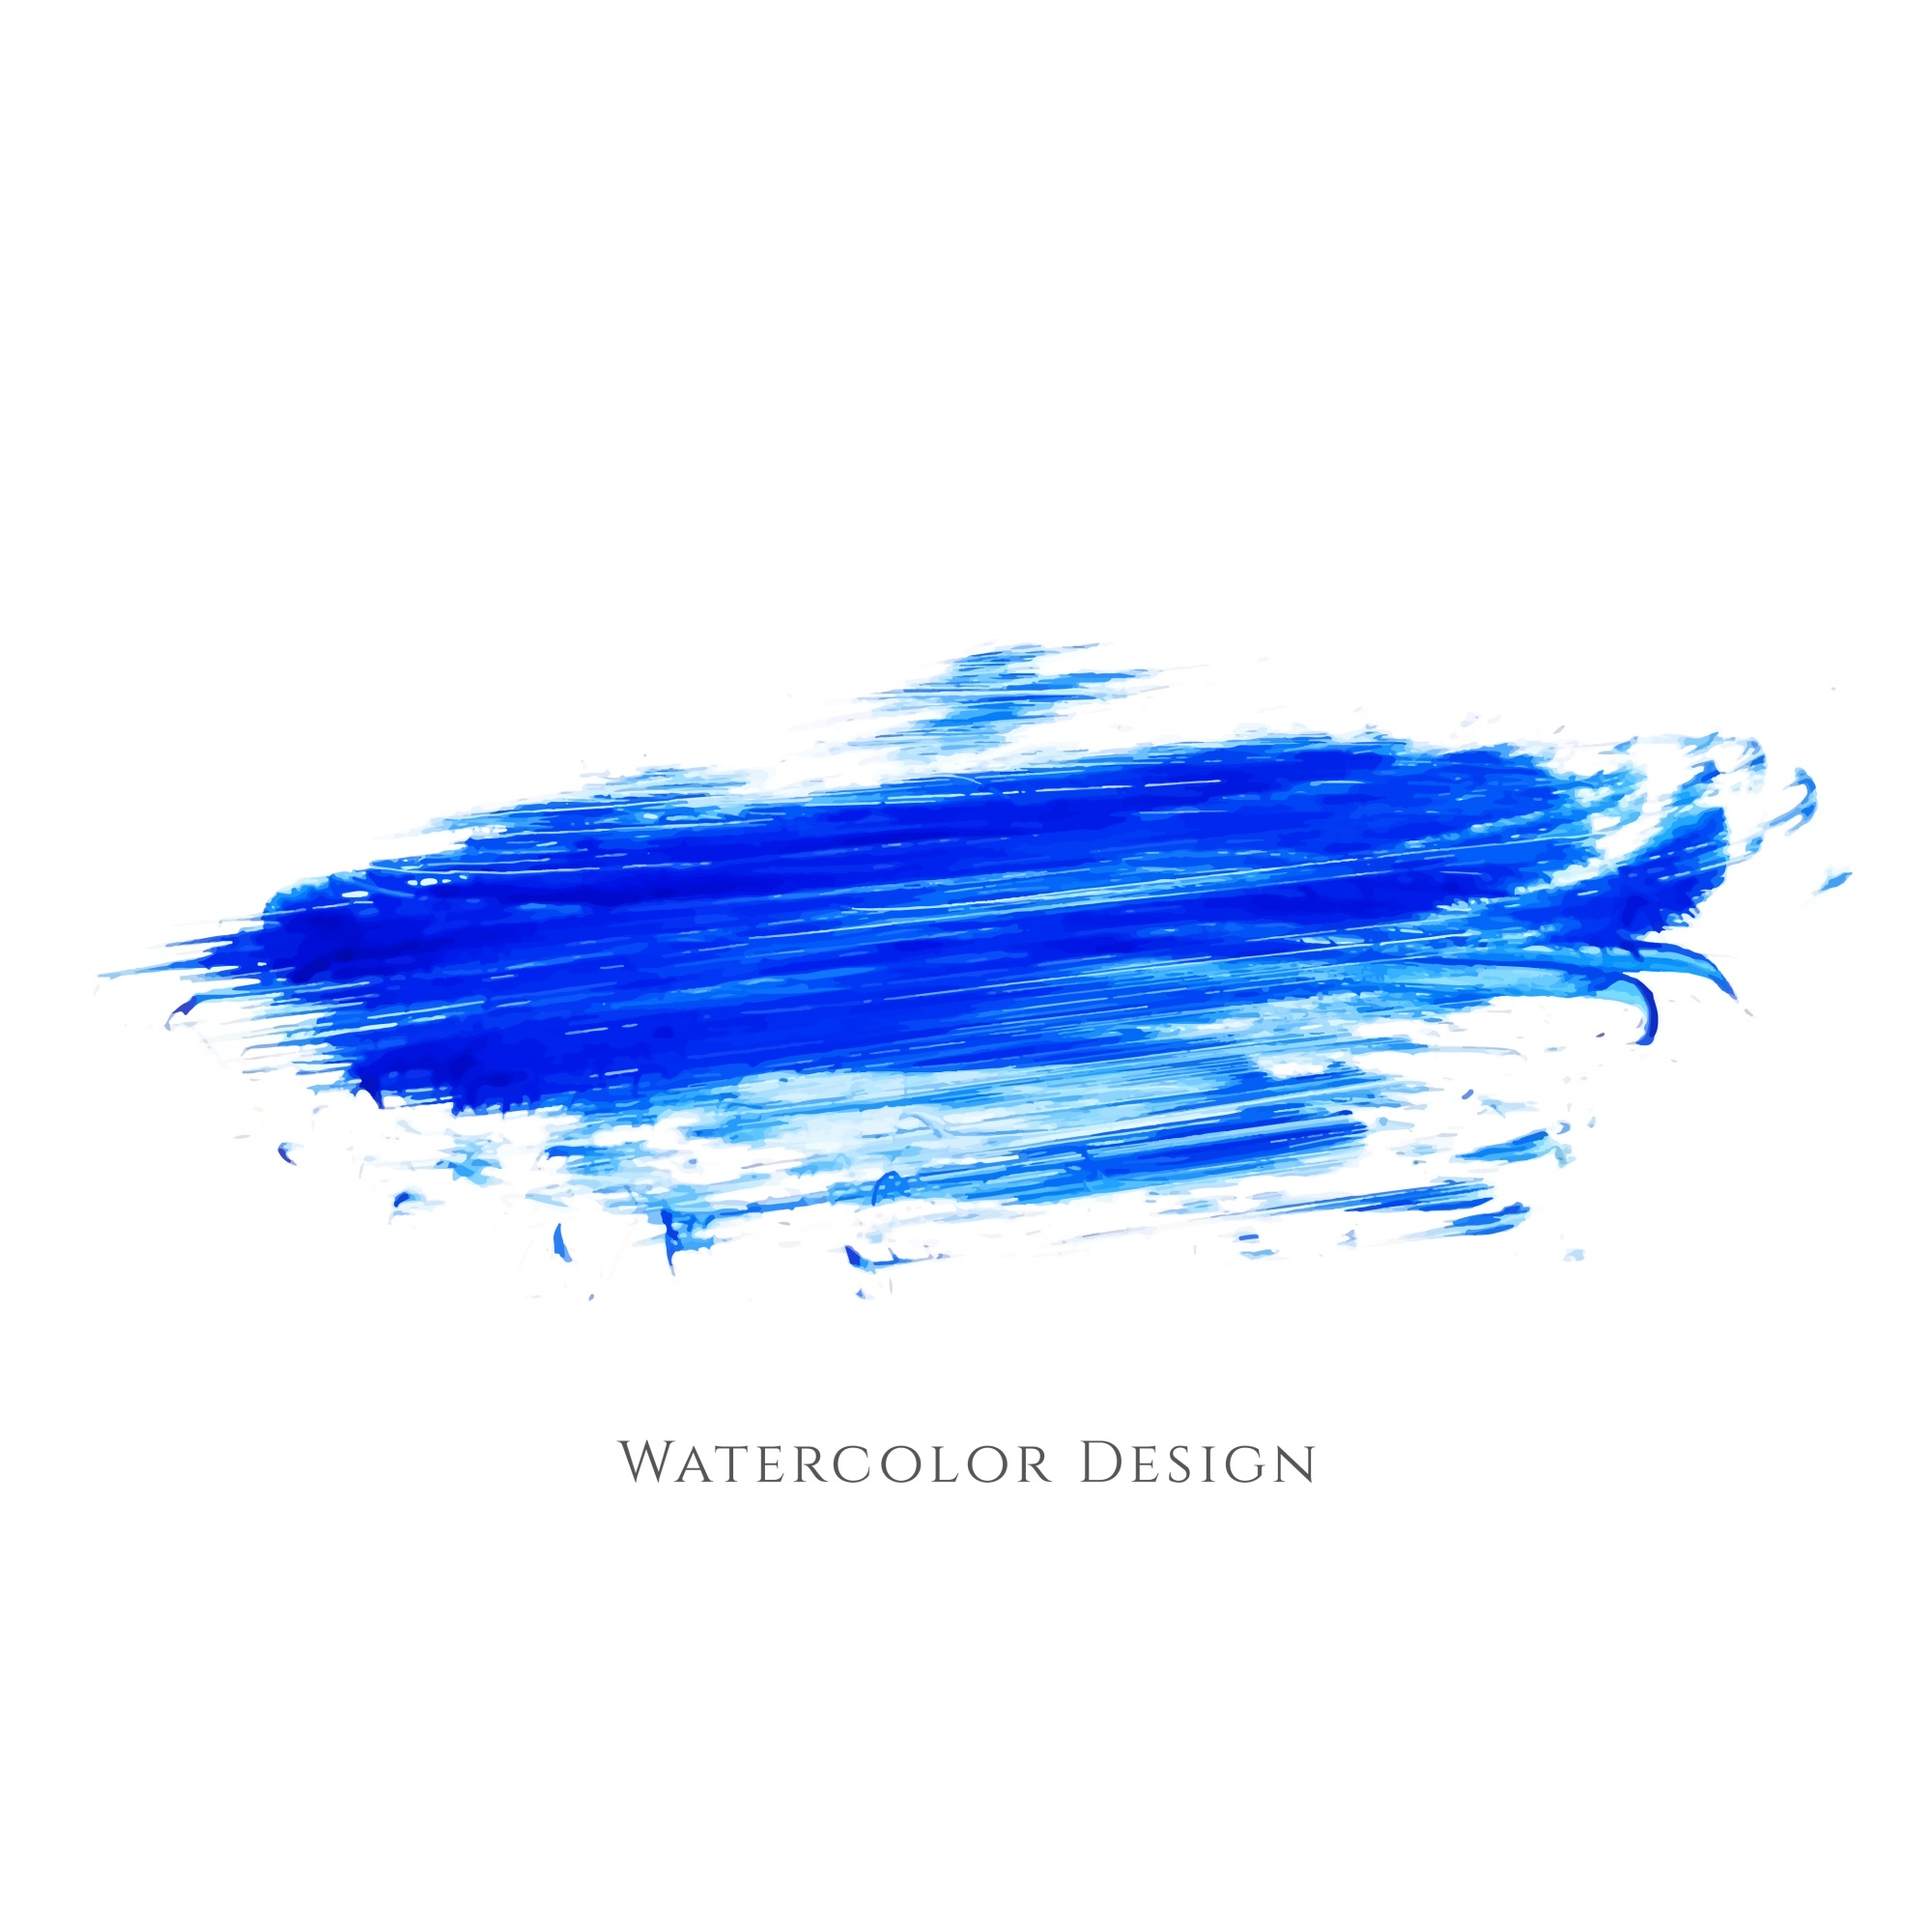 Abstract blue watercolor brush design